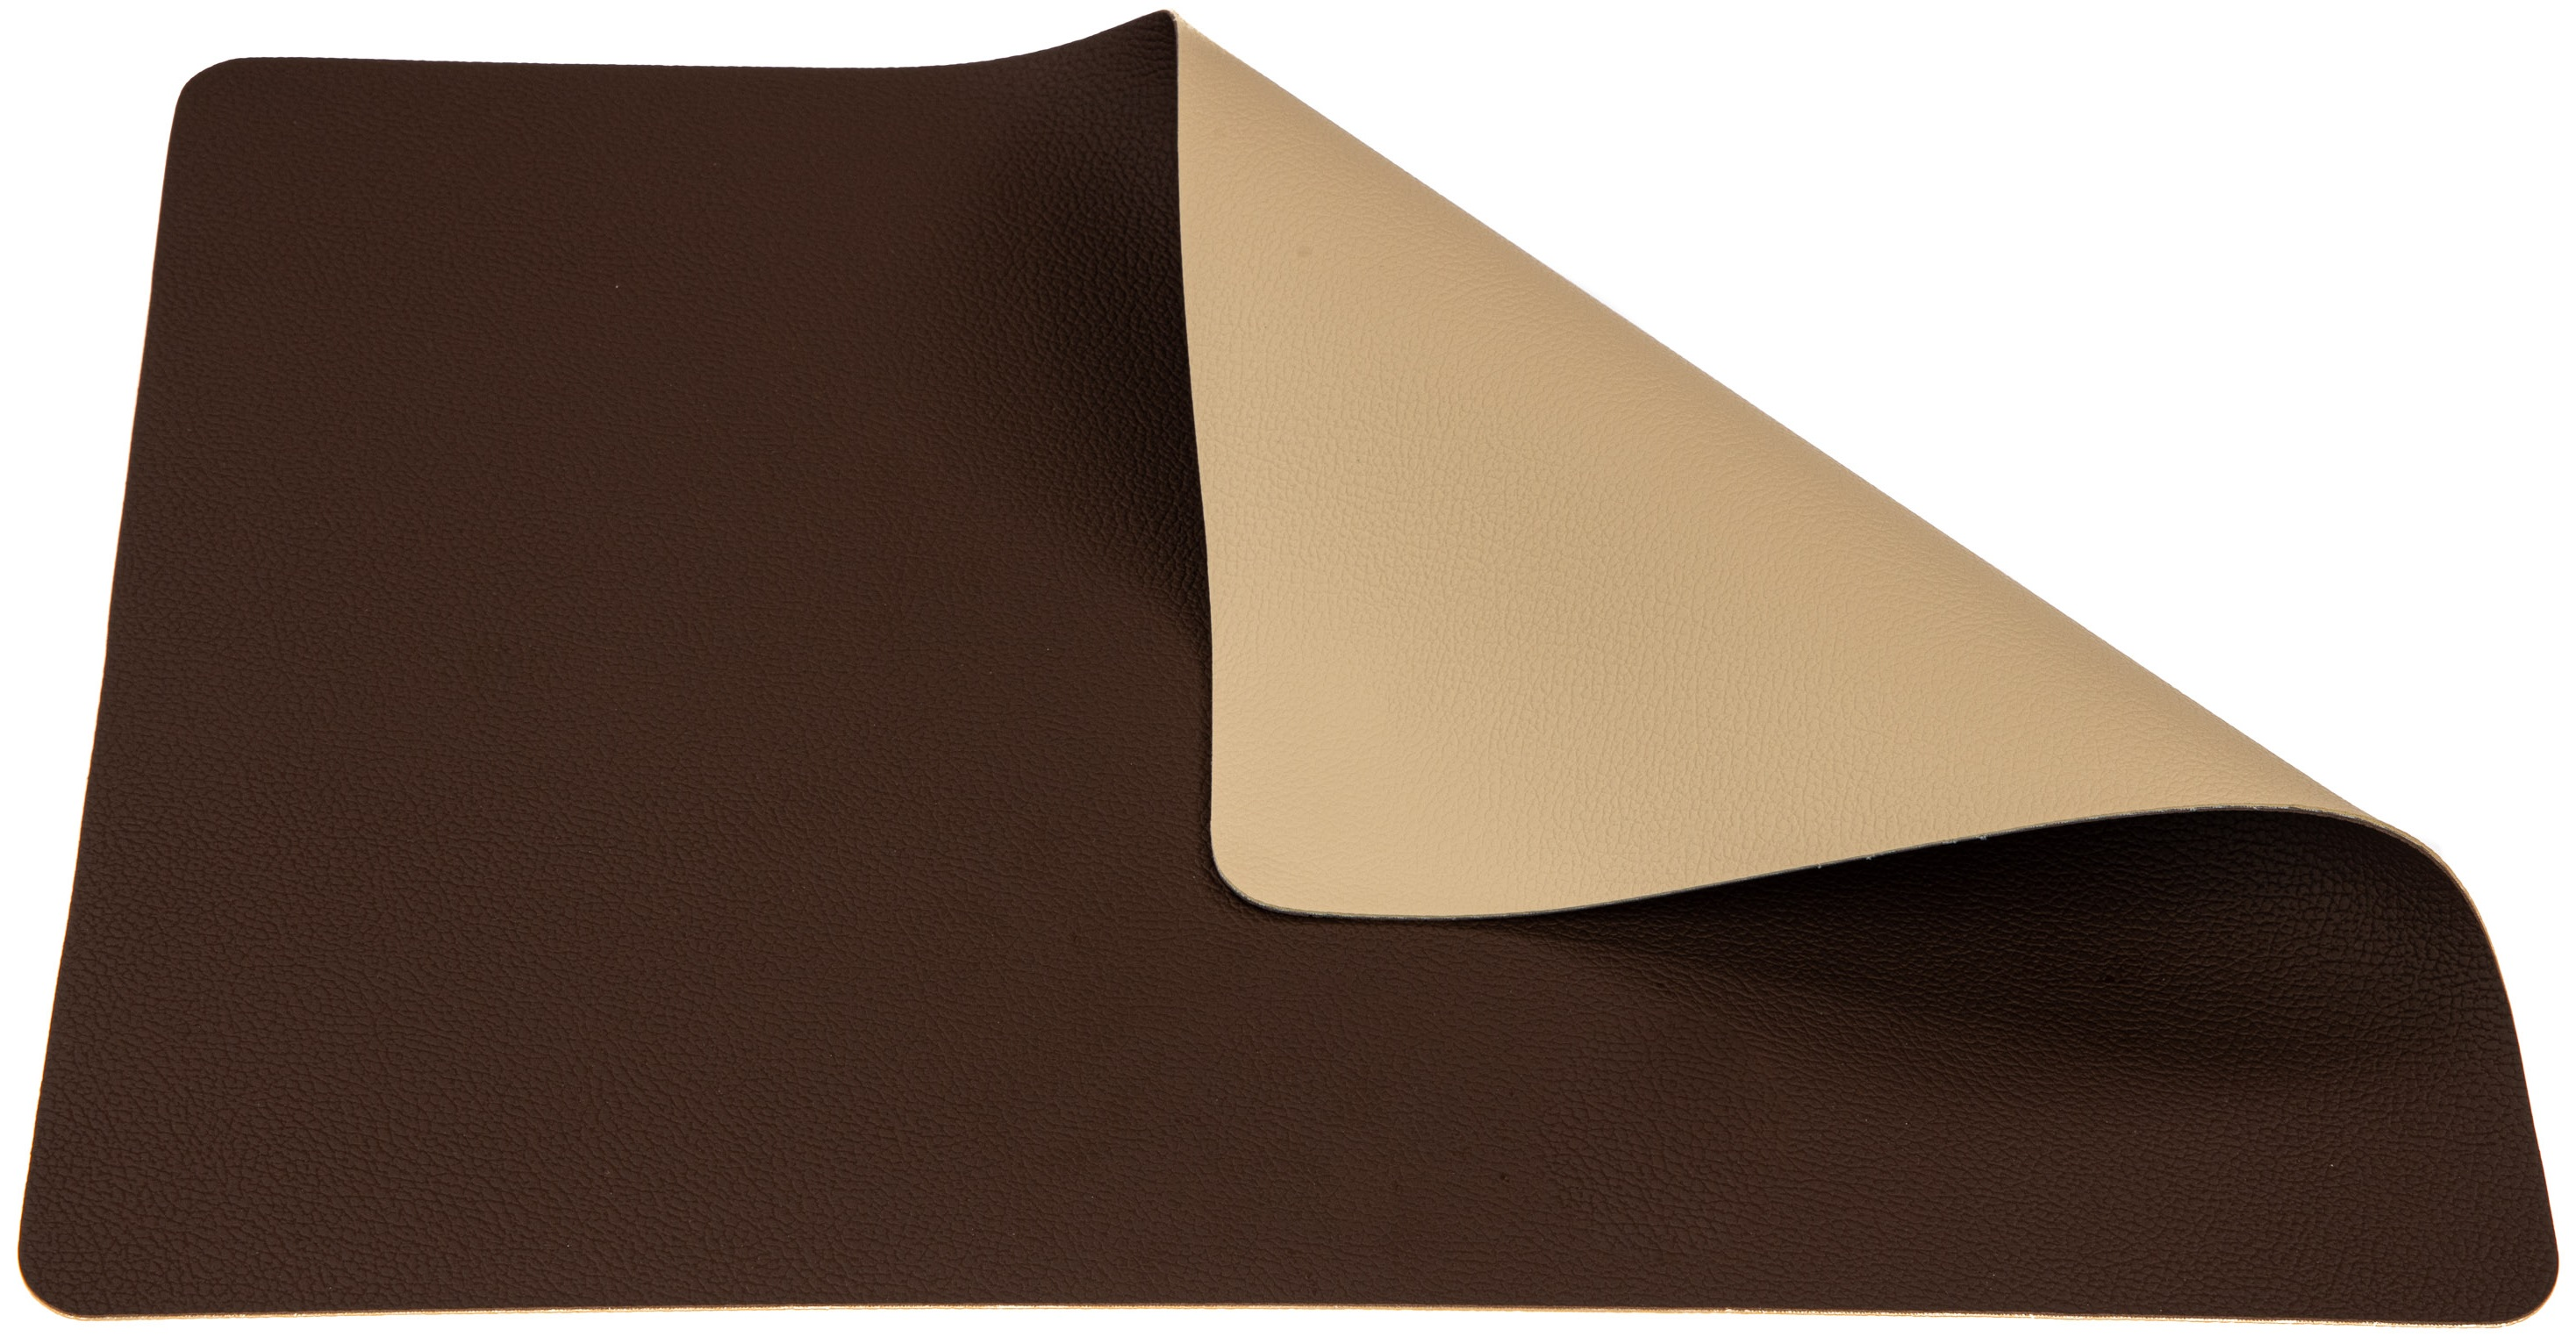 Jay Hill Placemat Leer Bruin Zand 33 x 46 cm